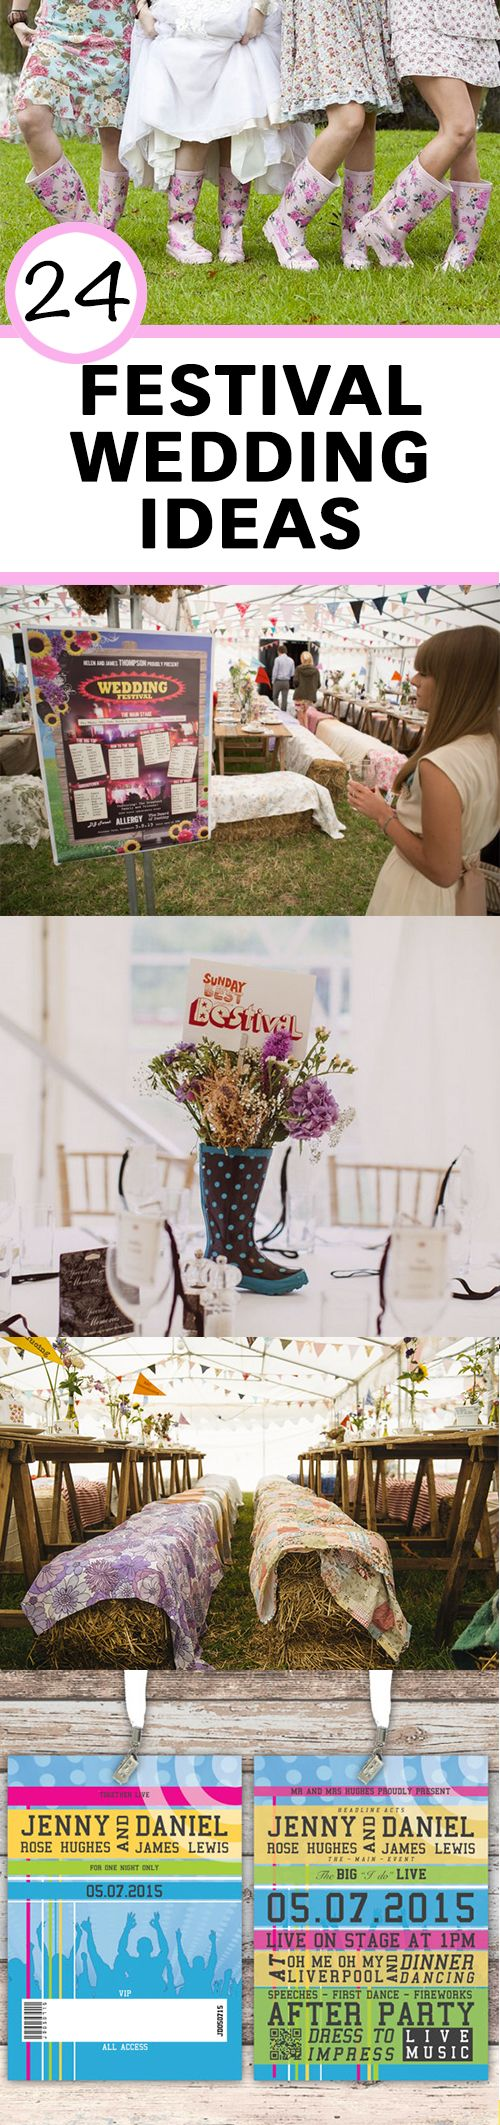 24 ideas for an awesome festival-themed wedding!